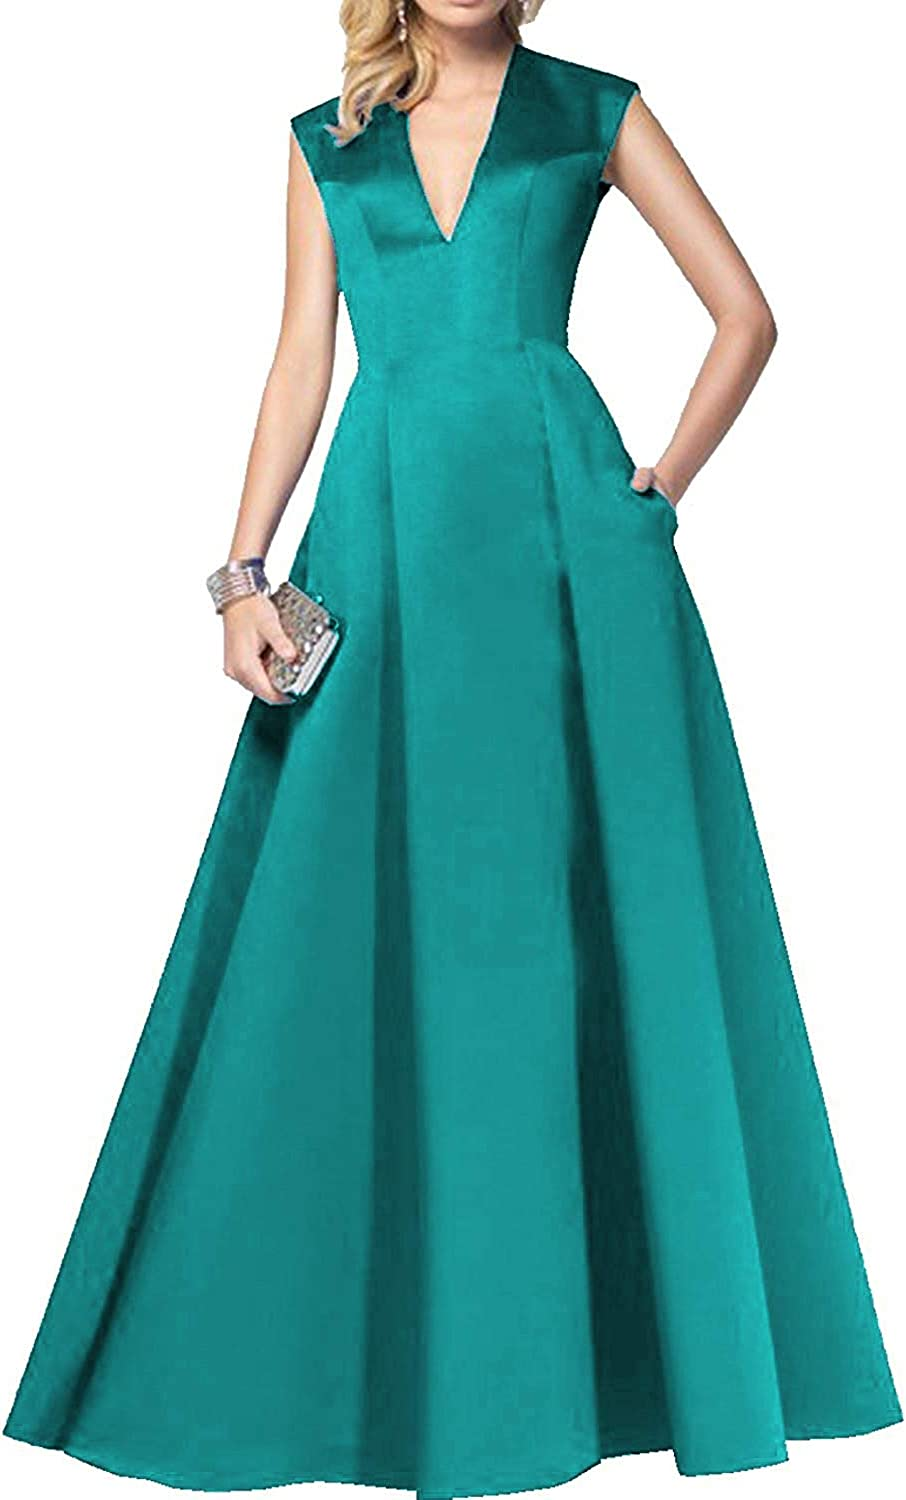 JQLD Women's Sexy V Neck A Line Satin Evening Dresses Open Back Formal Prom Gowns with Pockets